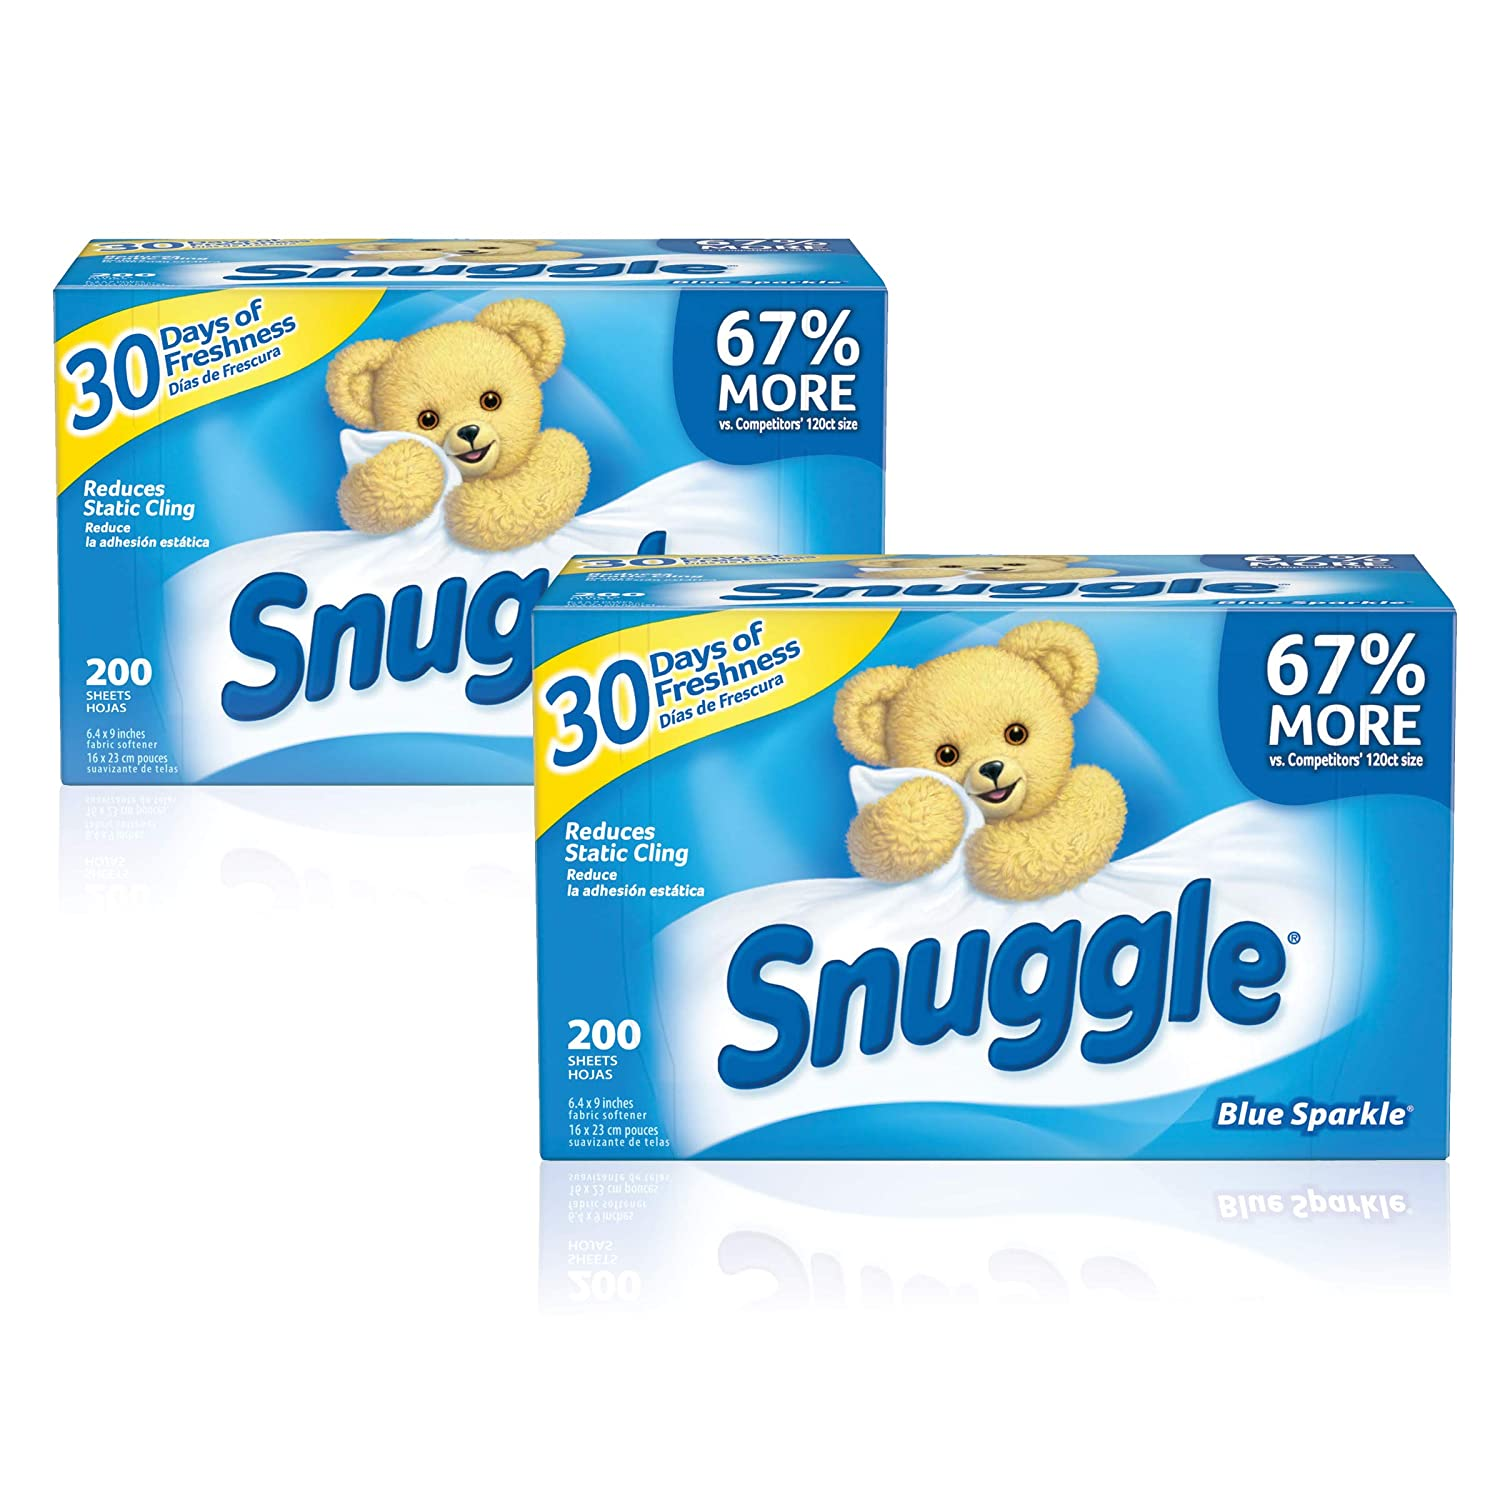 Snuggle Fabric Softener Dryer Sheets, Blue Sparkle, 2 Boxes, 400 Count